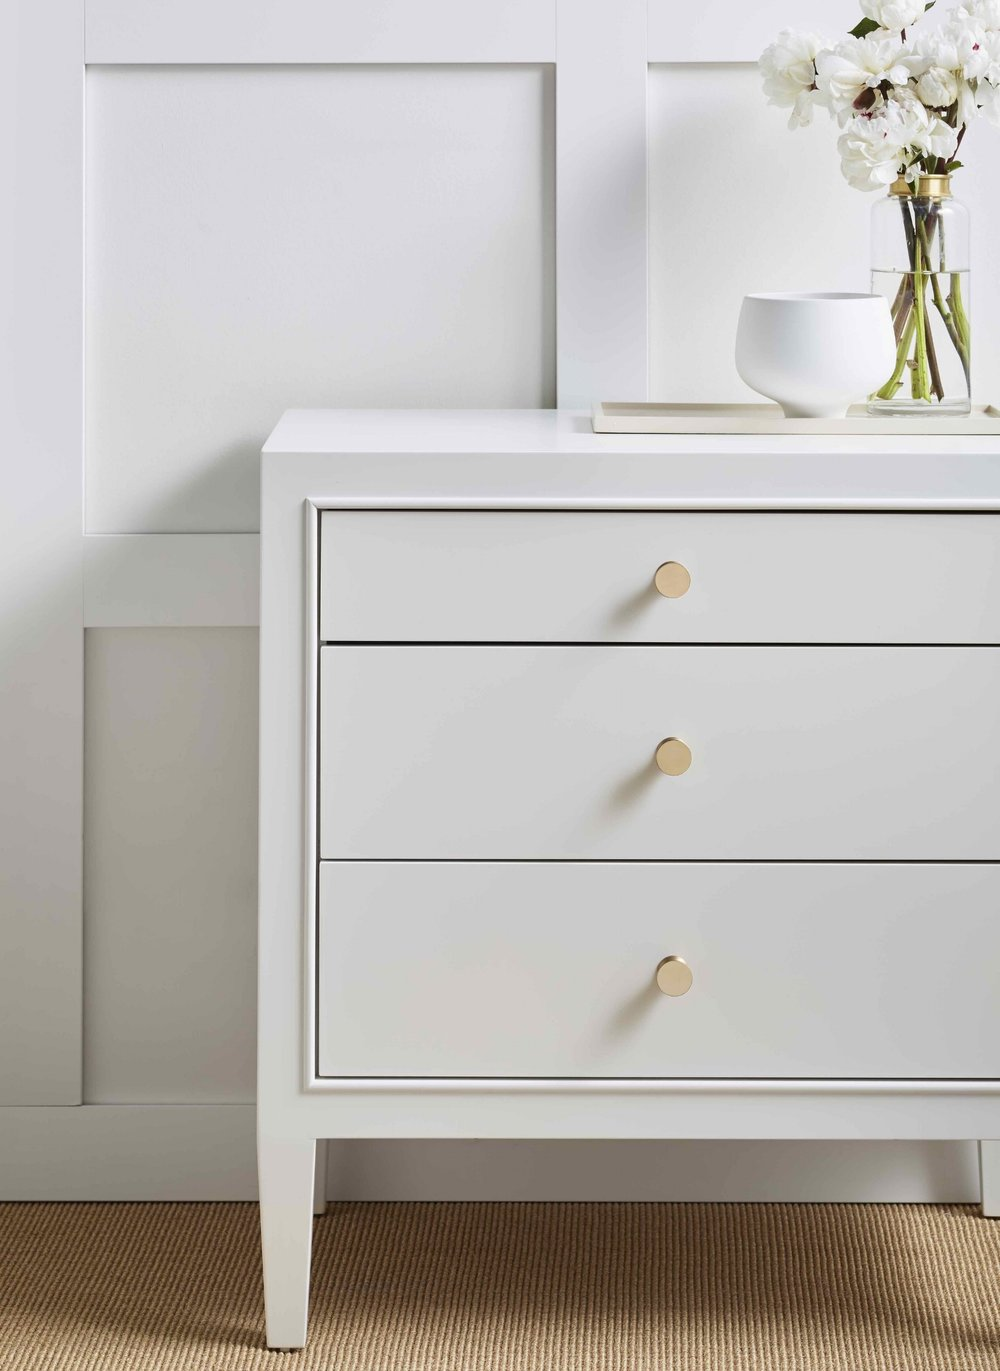 Three-drawer nightstand with bead moulding detail to frame drawers. Paint finish in Chantilly Lace by Benjamin Moore.